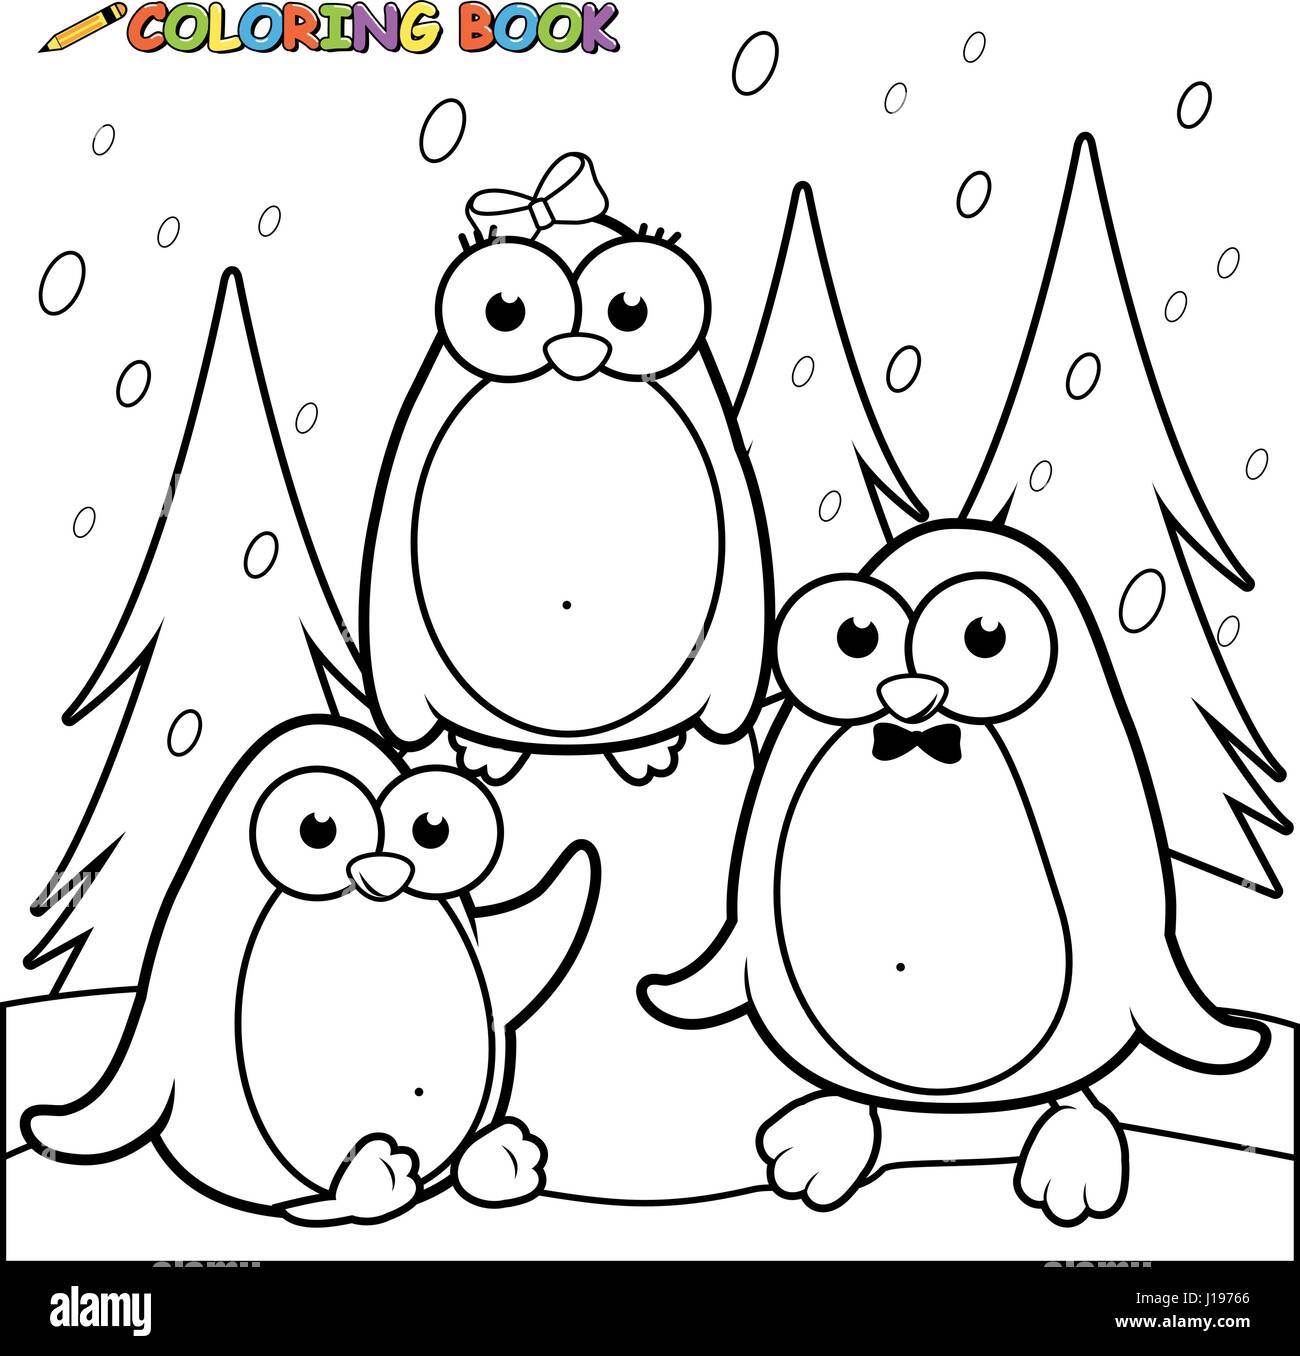 snow white book stock photos snow white book stock images alamy South Park Morning snowy landscape with penguins on ice black and white coloring page stock image